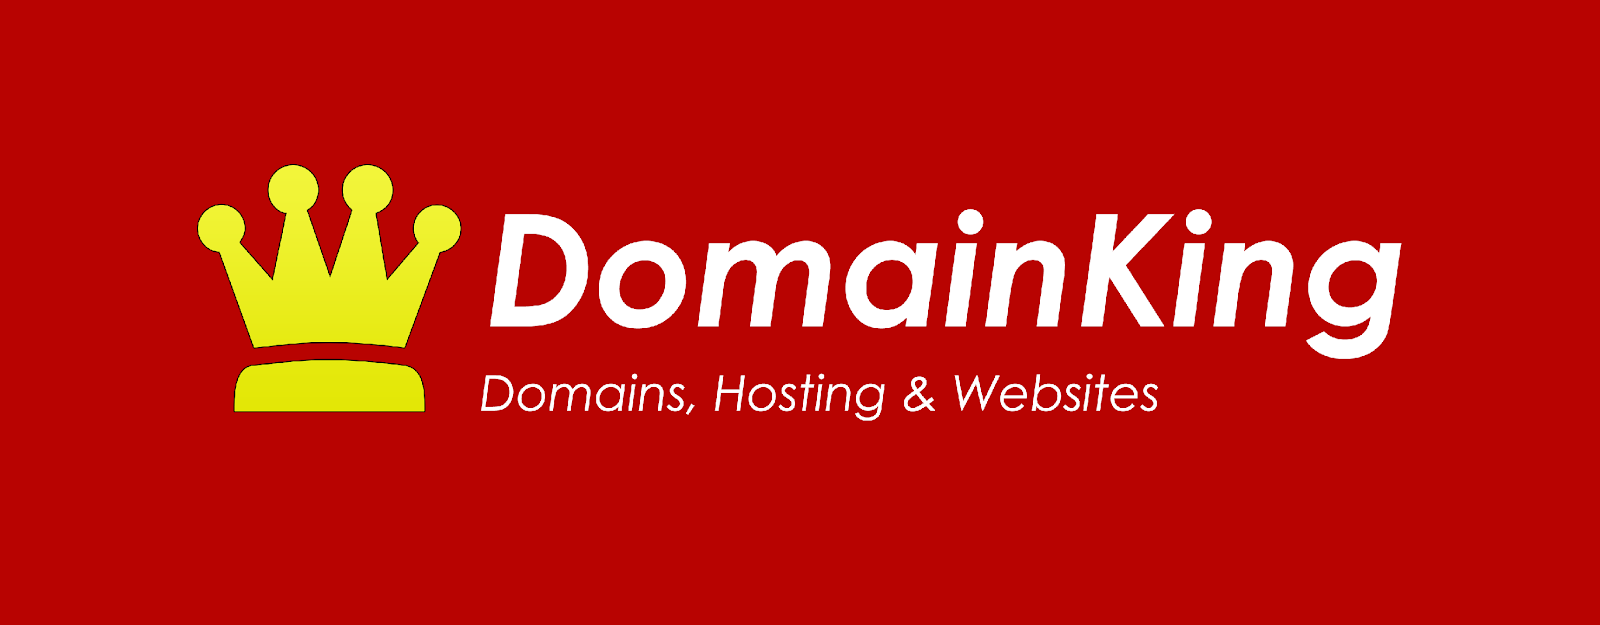 DomainKing hosting and domains in Nigeria